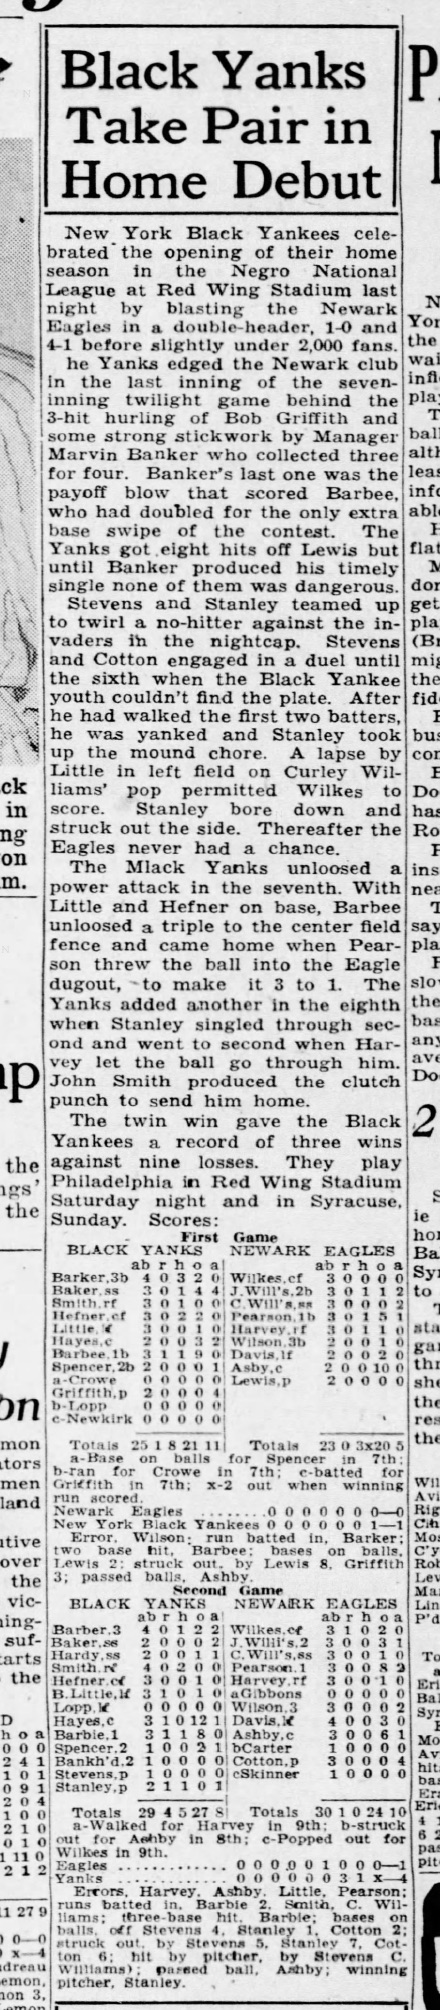 Rochester Democrat and Chronicle_1948-5-26_p22